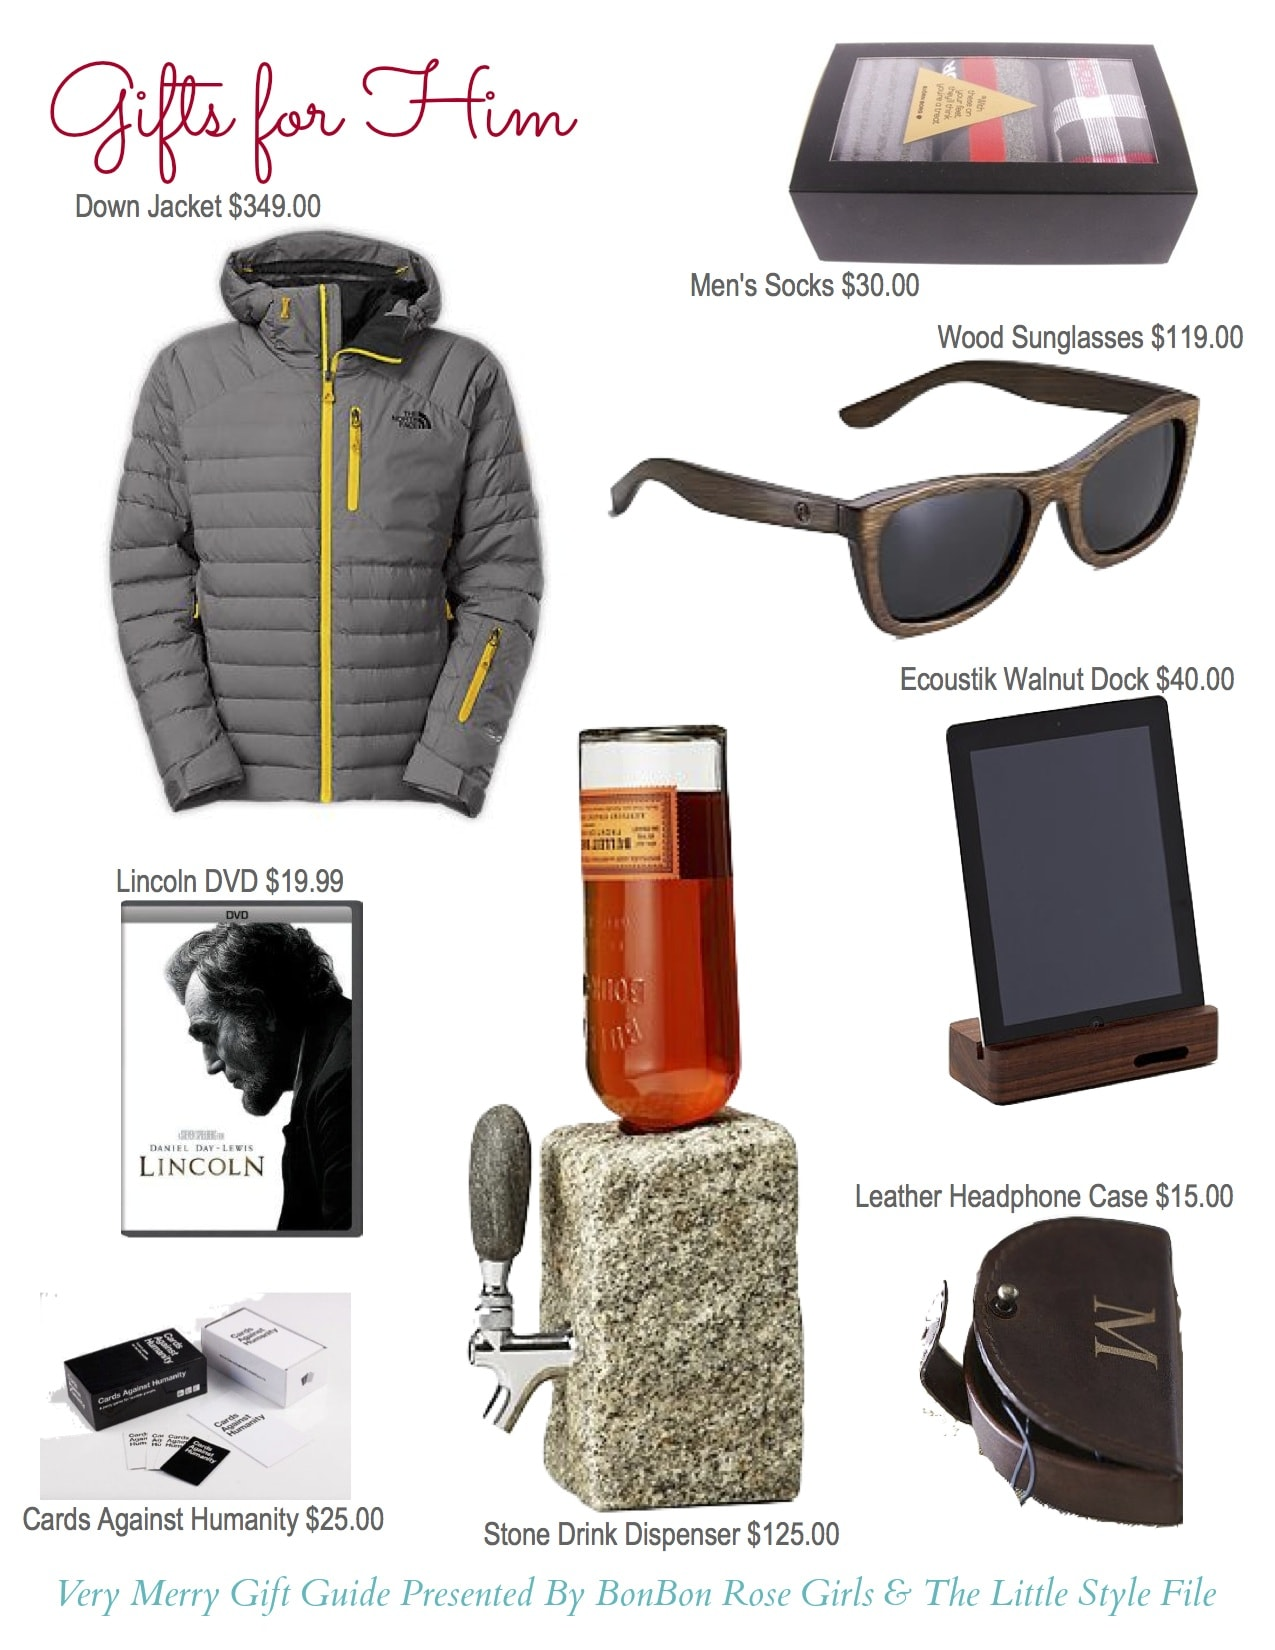 gift ideas for him, holiday gift ideas for him, holiday gift ideas